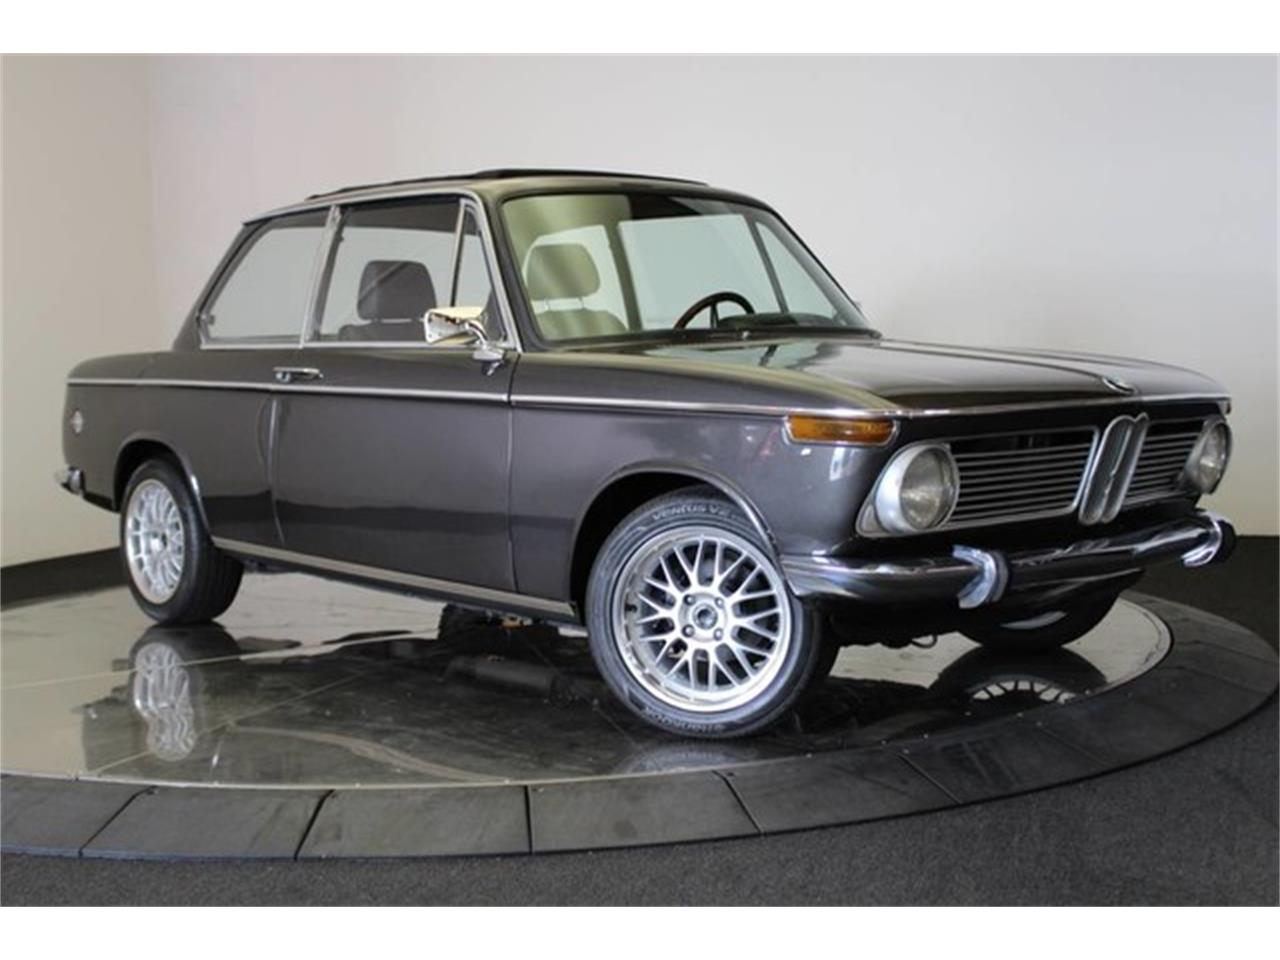 Bmw 2002 For Sale >> 1968 Bmw 2002 For Sale Classiccars Com Cc 939944